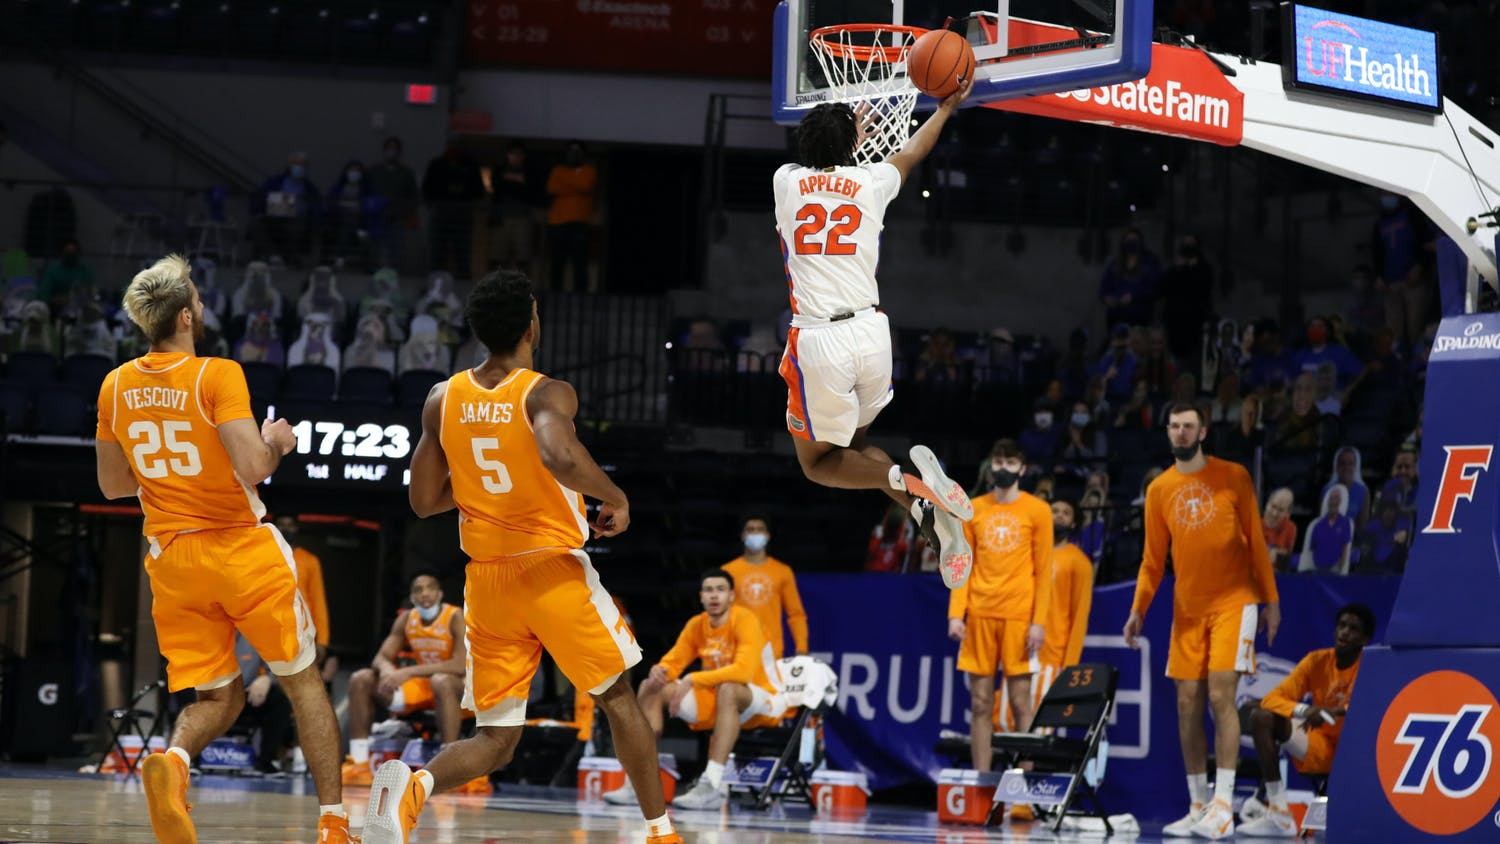 What made such seasoned depth en route to a 26-point upset victory was possible because of Florida's recruiting and hidden gems from the transfer portal. Photo courtesy of the SEC Media Portal.